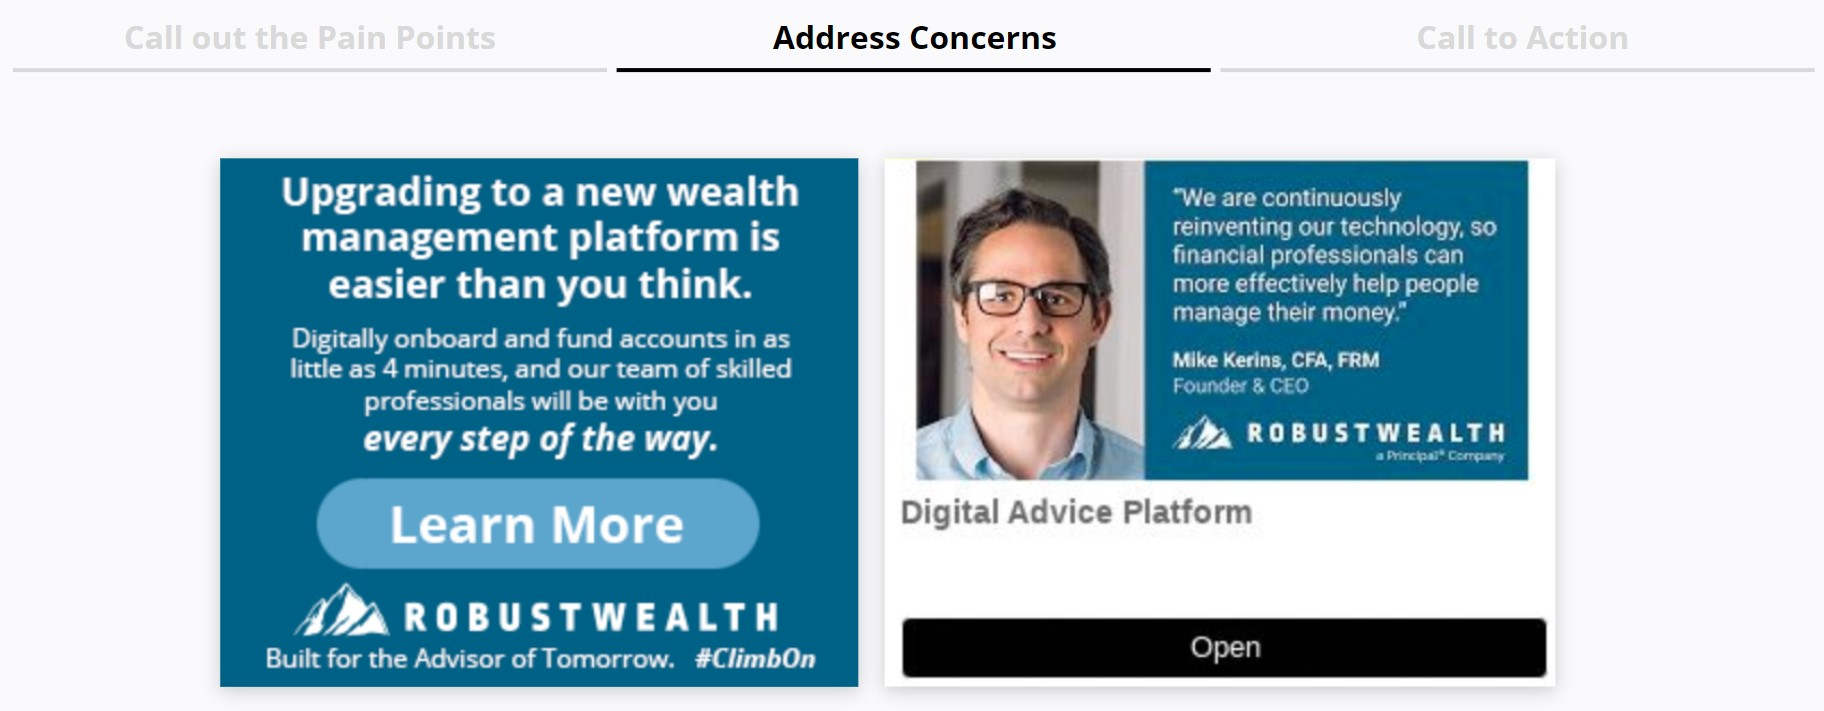 RobustWealth - Display Ads Tries to preempt potential objectives